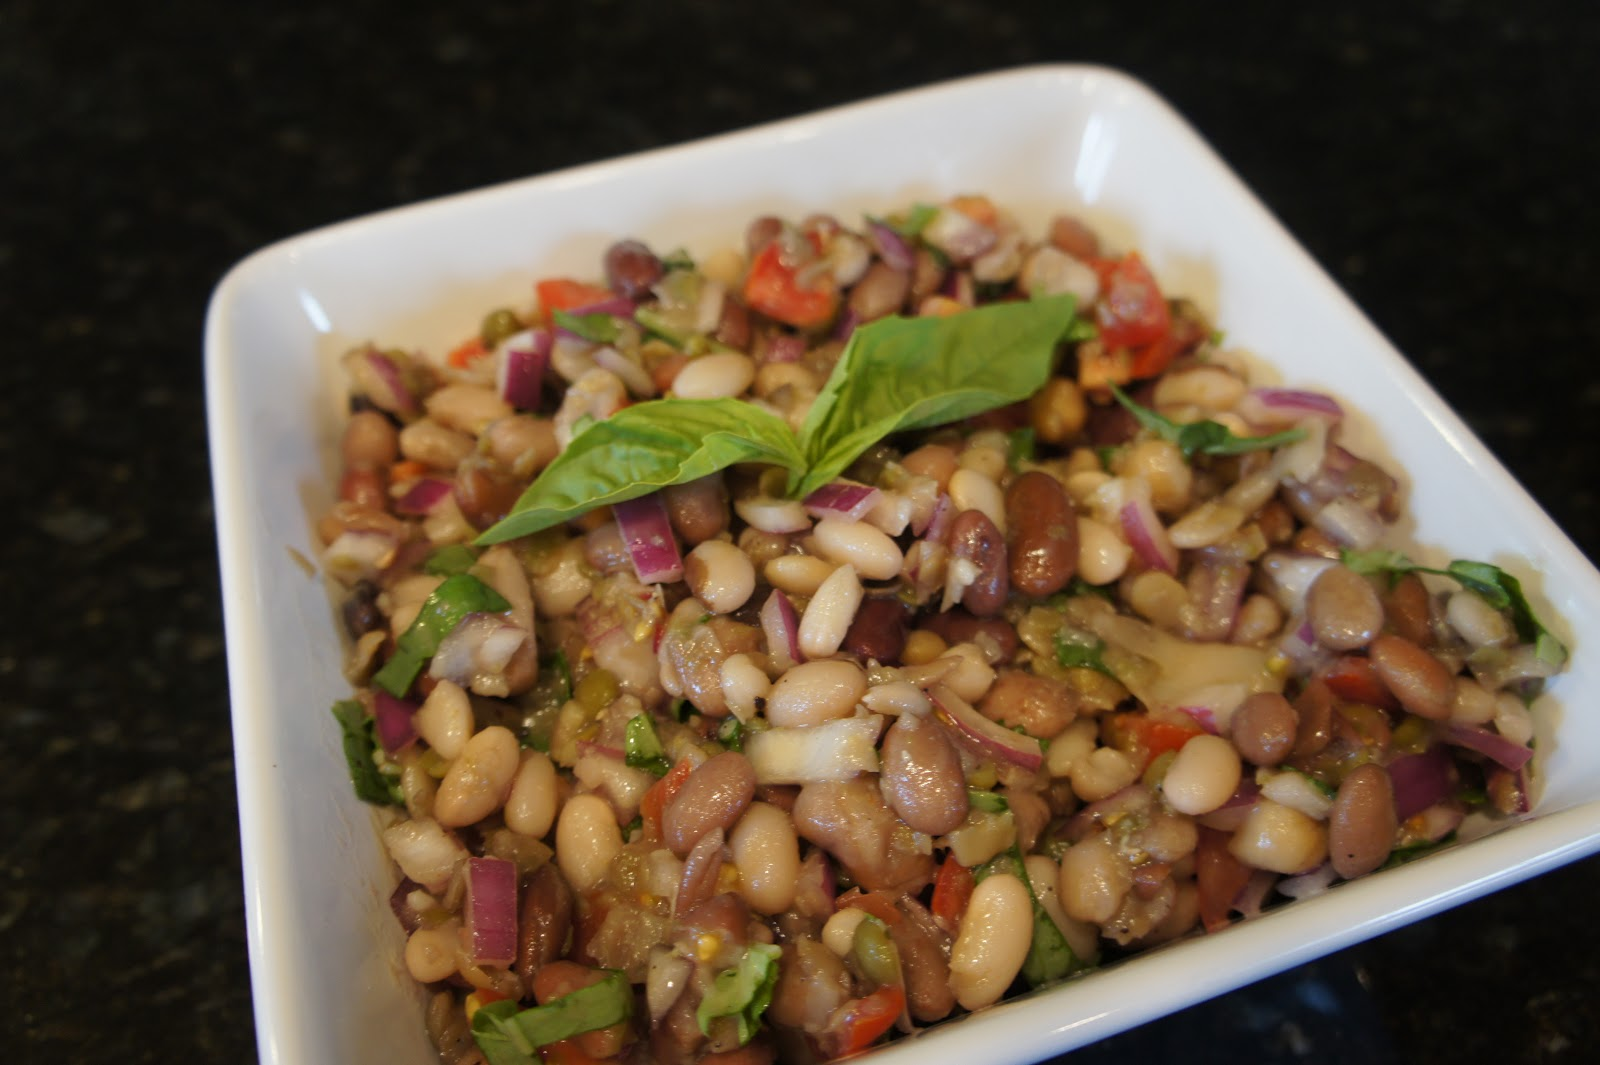 Simple Kitchen With Missy Maki 15 bean salad | mrs. maki cooks~the simple kitchen with missy maki